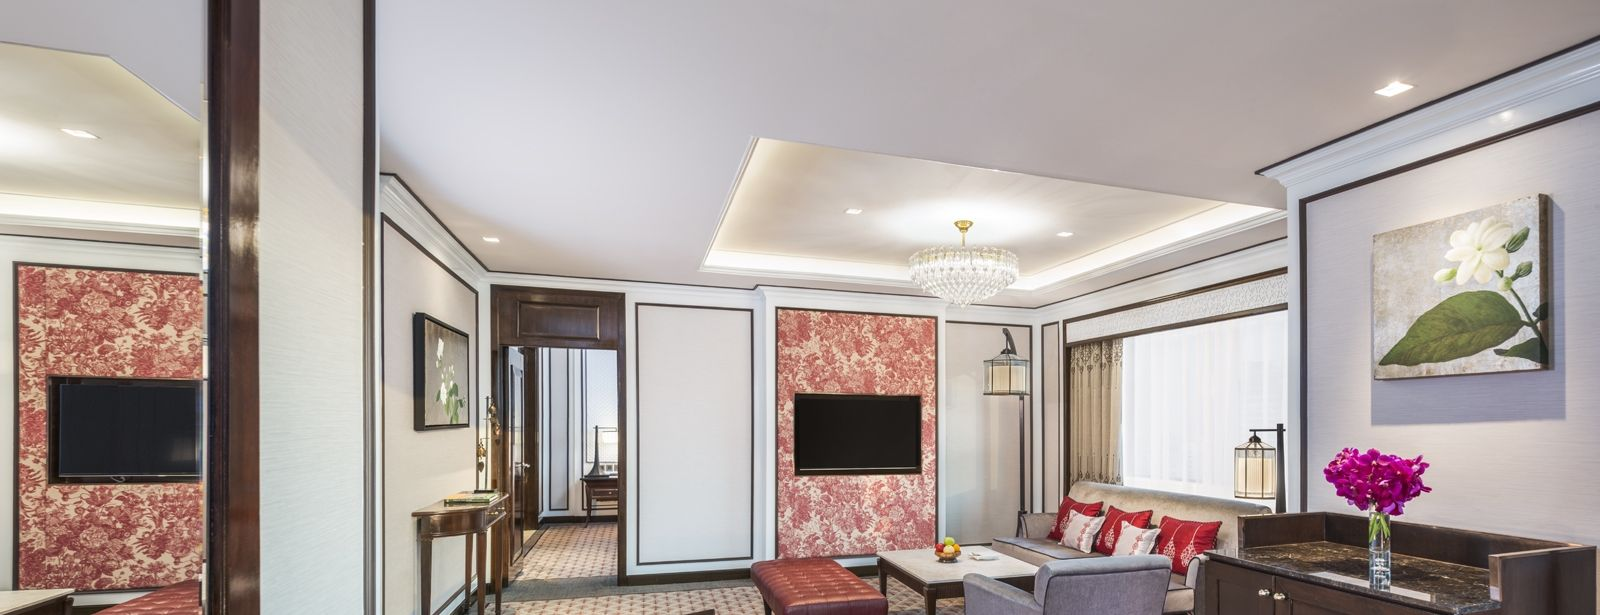 Athenee Suite